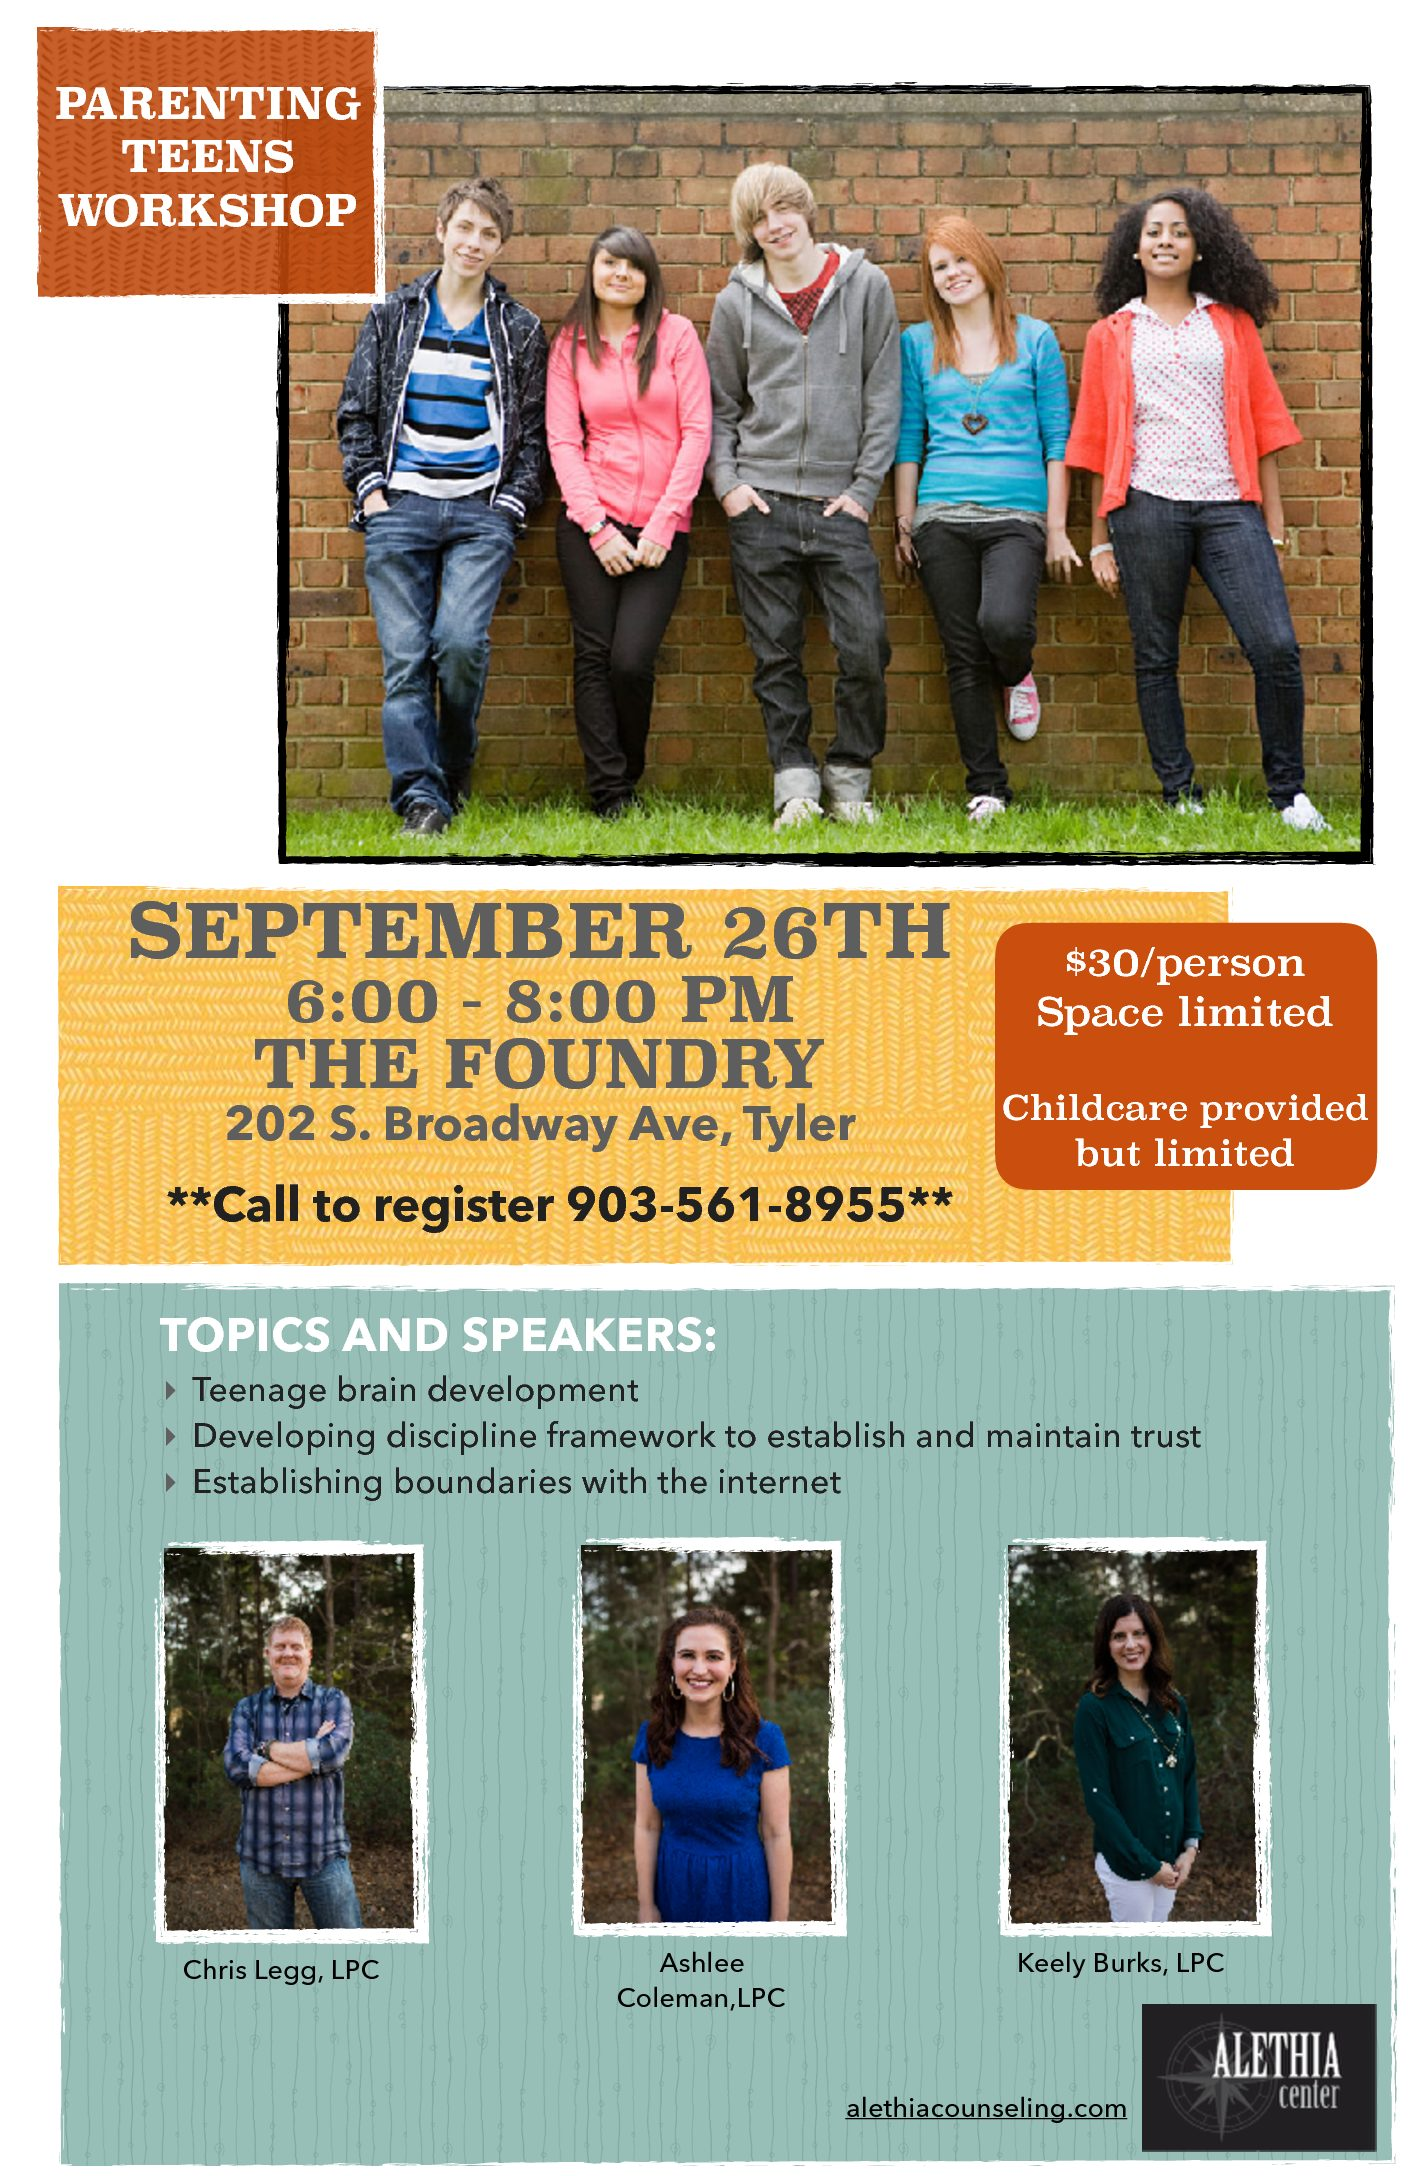 Sign up for our Parenting Teens Workshop – Sept 26th